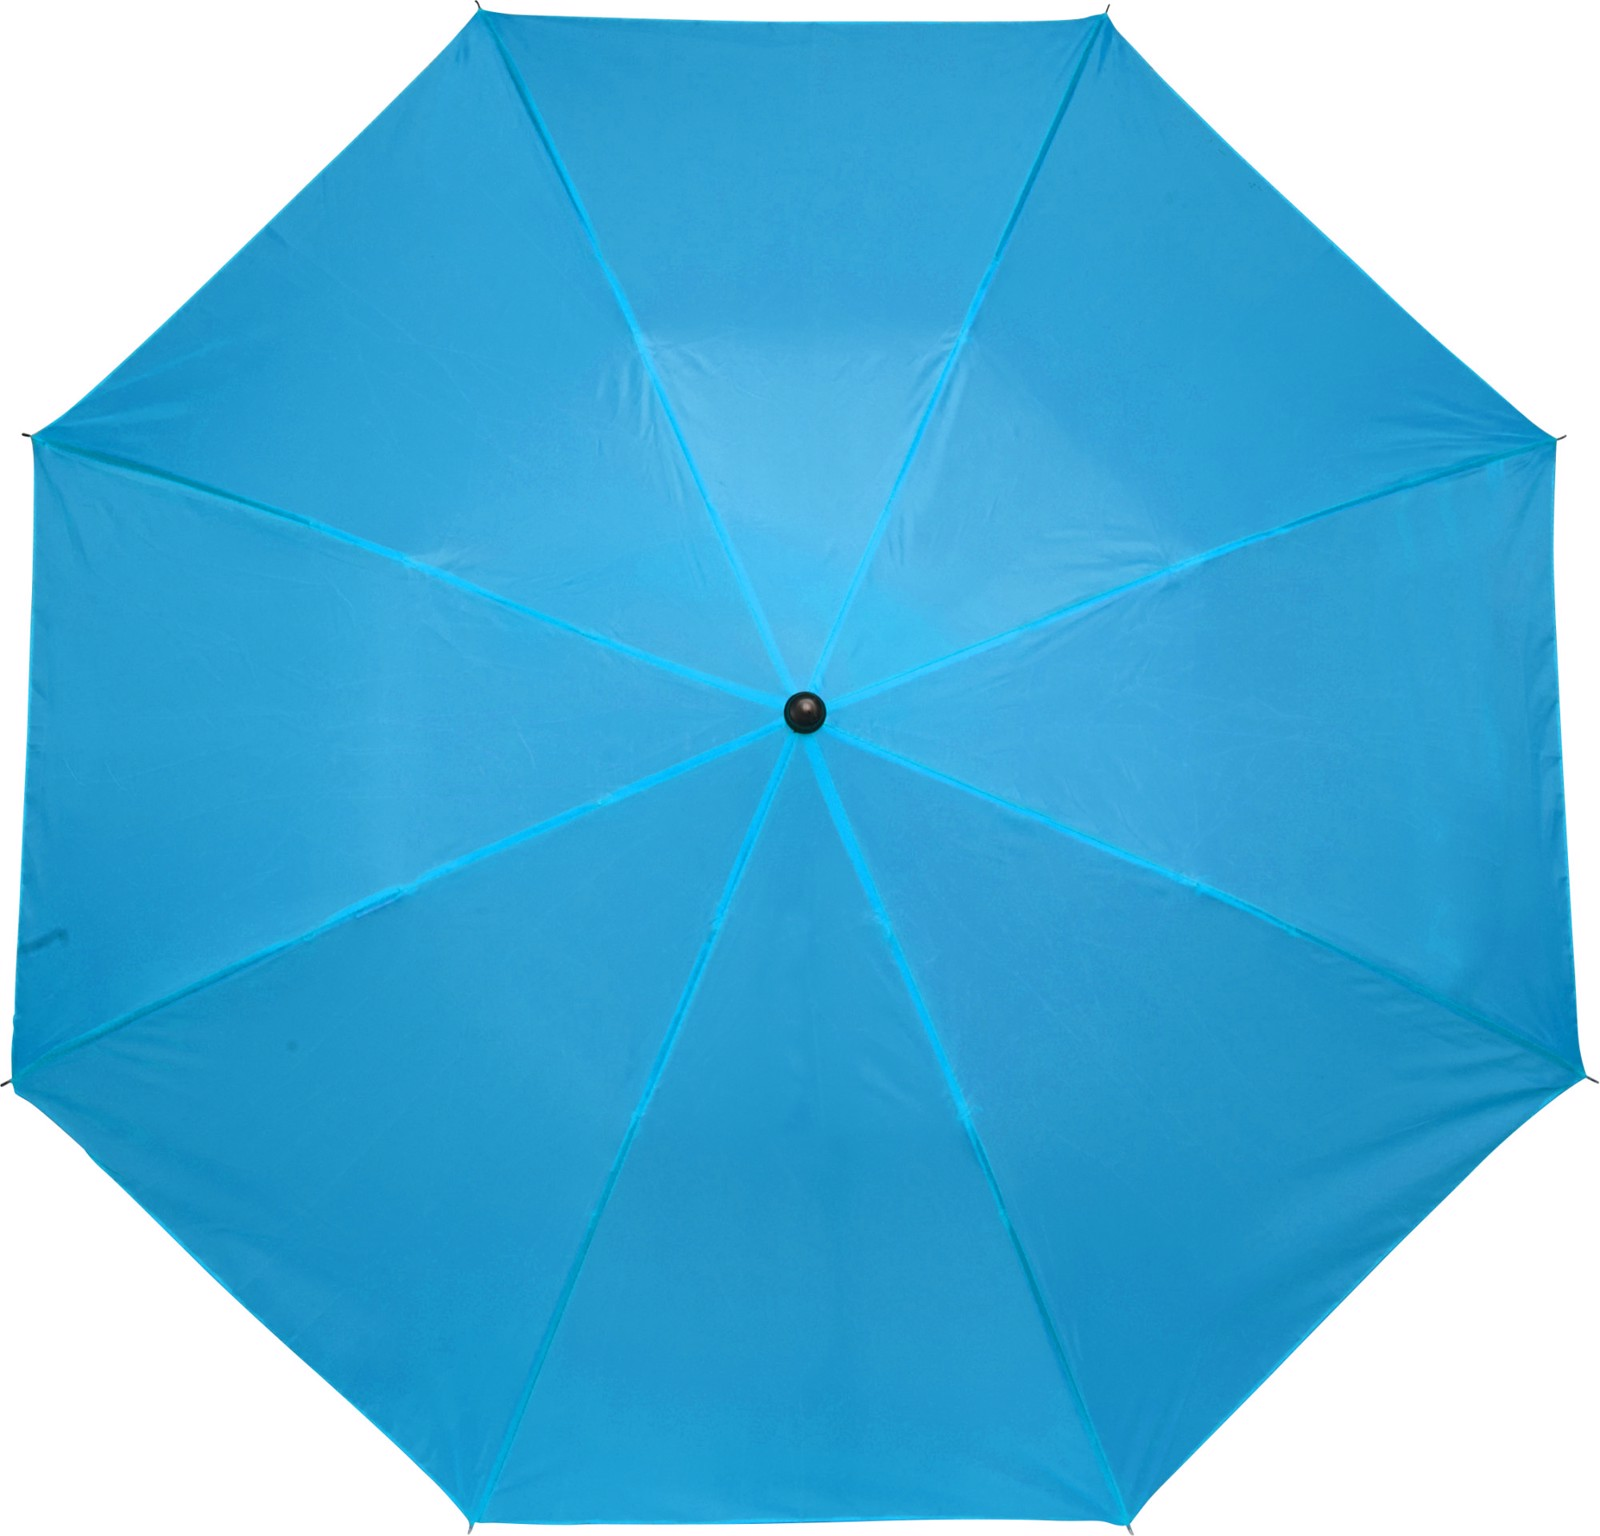 Polyester (190T) umbrella - Light Blue